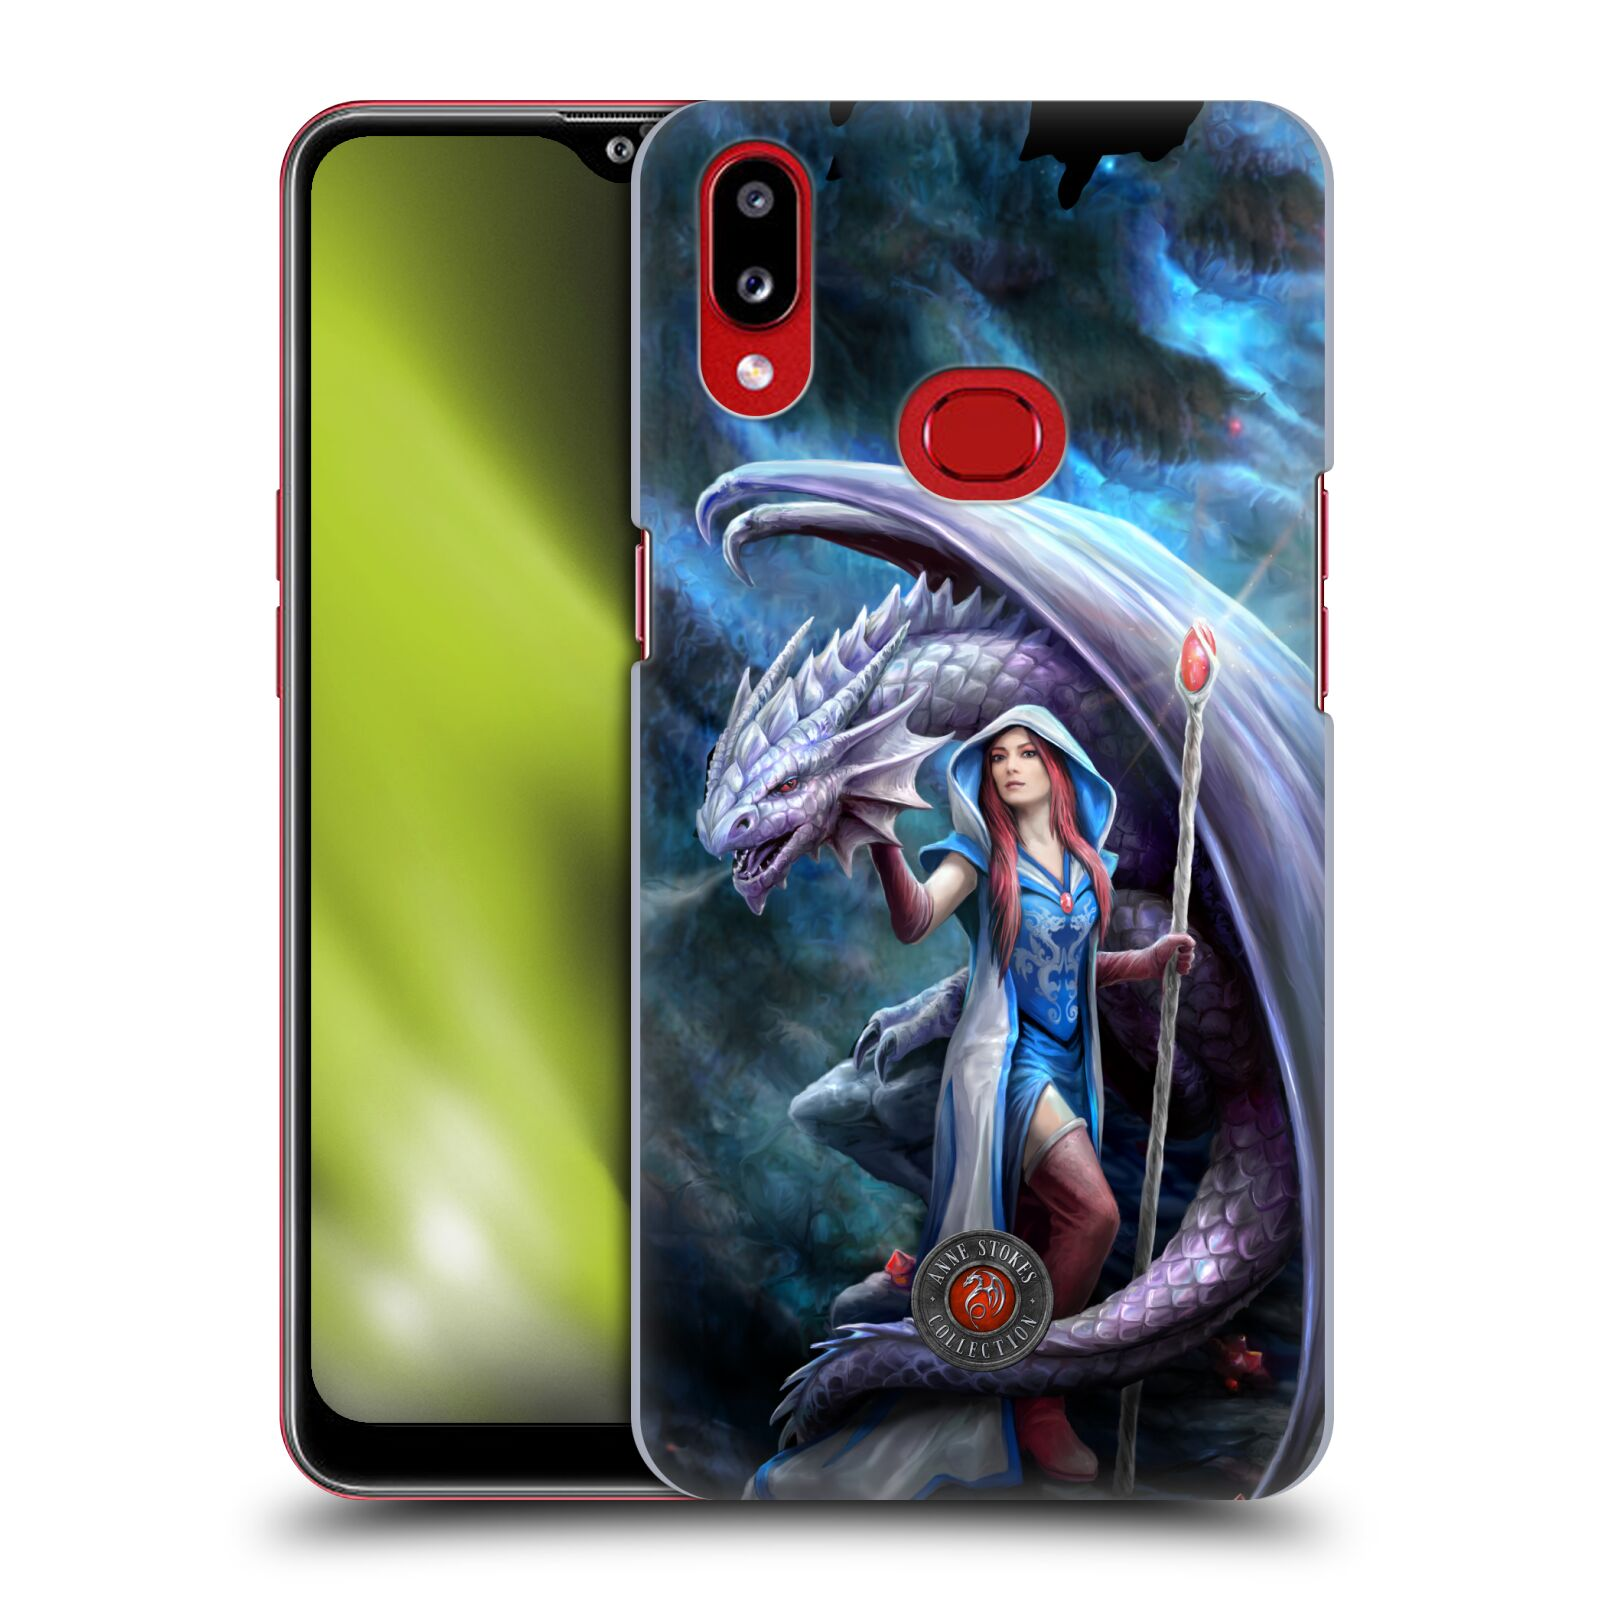 Official Anne Stokes Dragon Friendship 2 Mage Back Case for Samsung Galaxy A10s (2019)